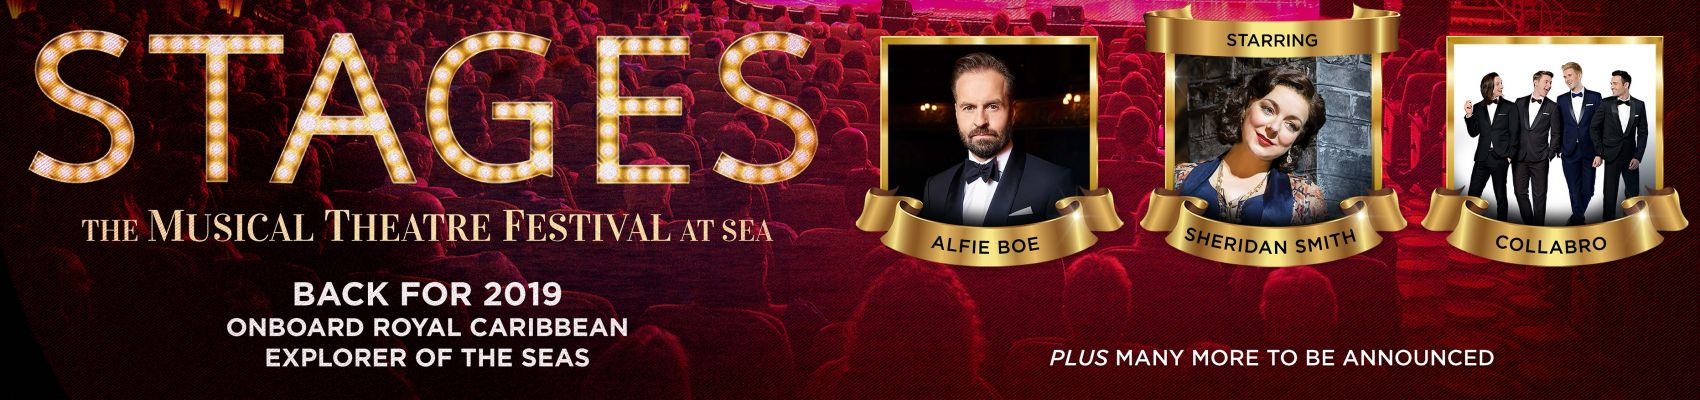 Cruise Select :: Stages the musical theatre festival at sea 2019